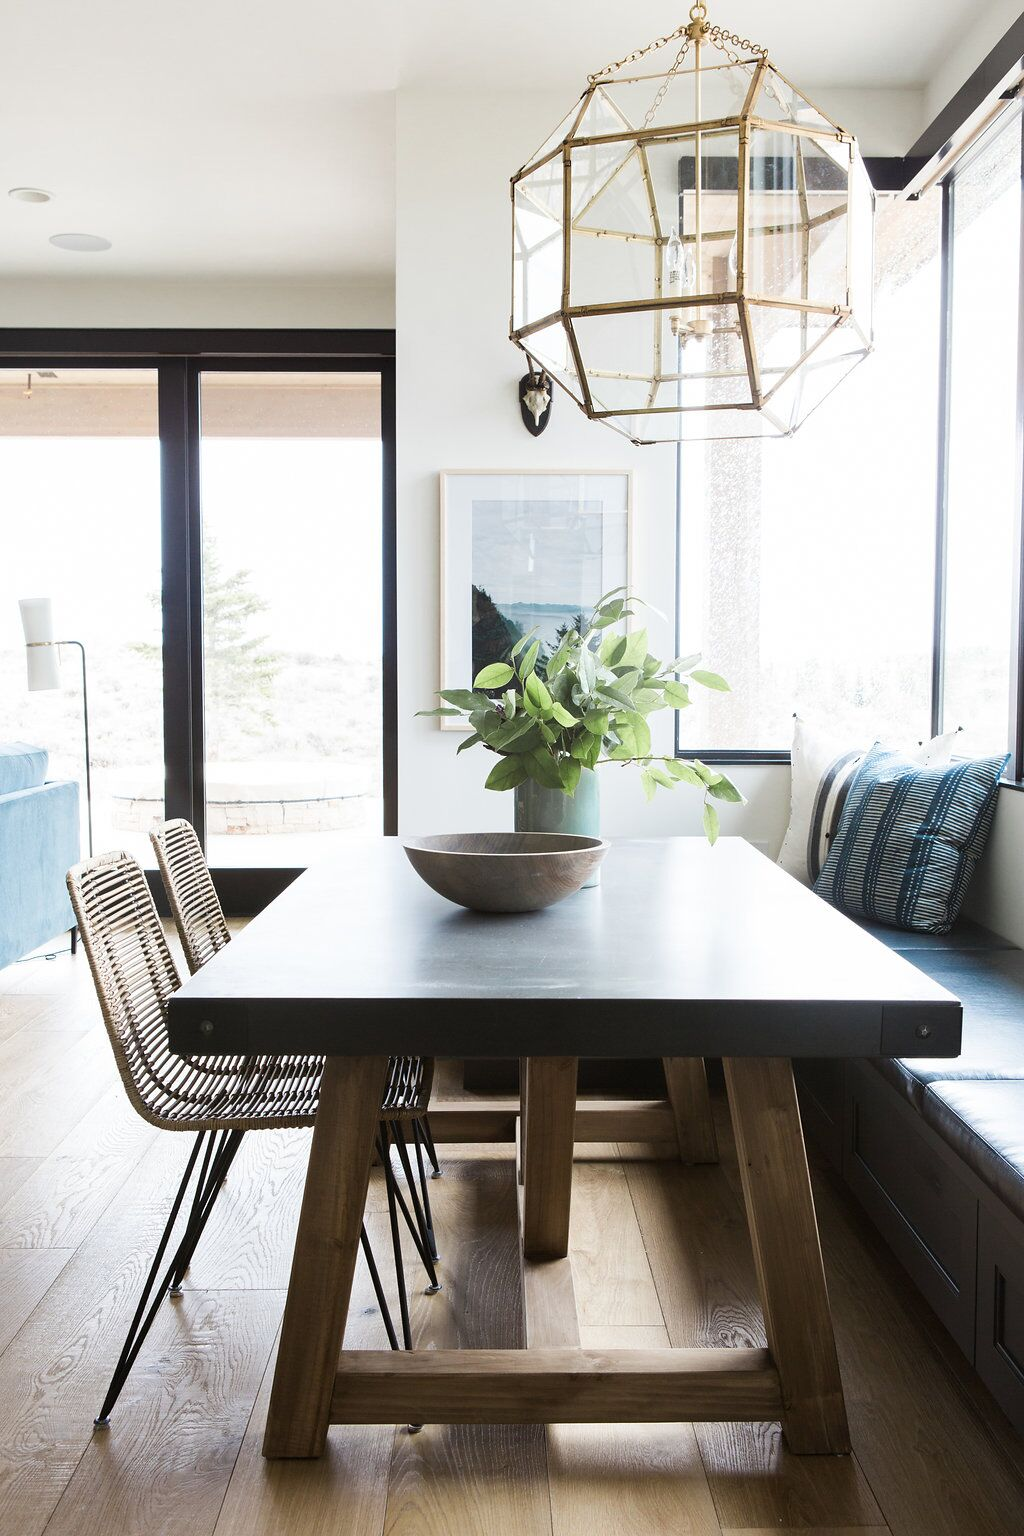 Length of kitchen table and modern light fixture